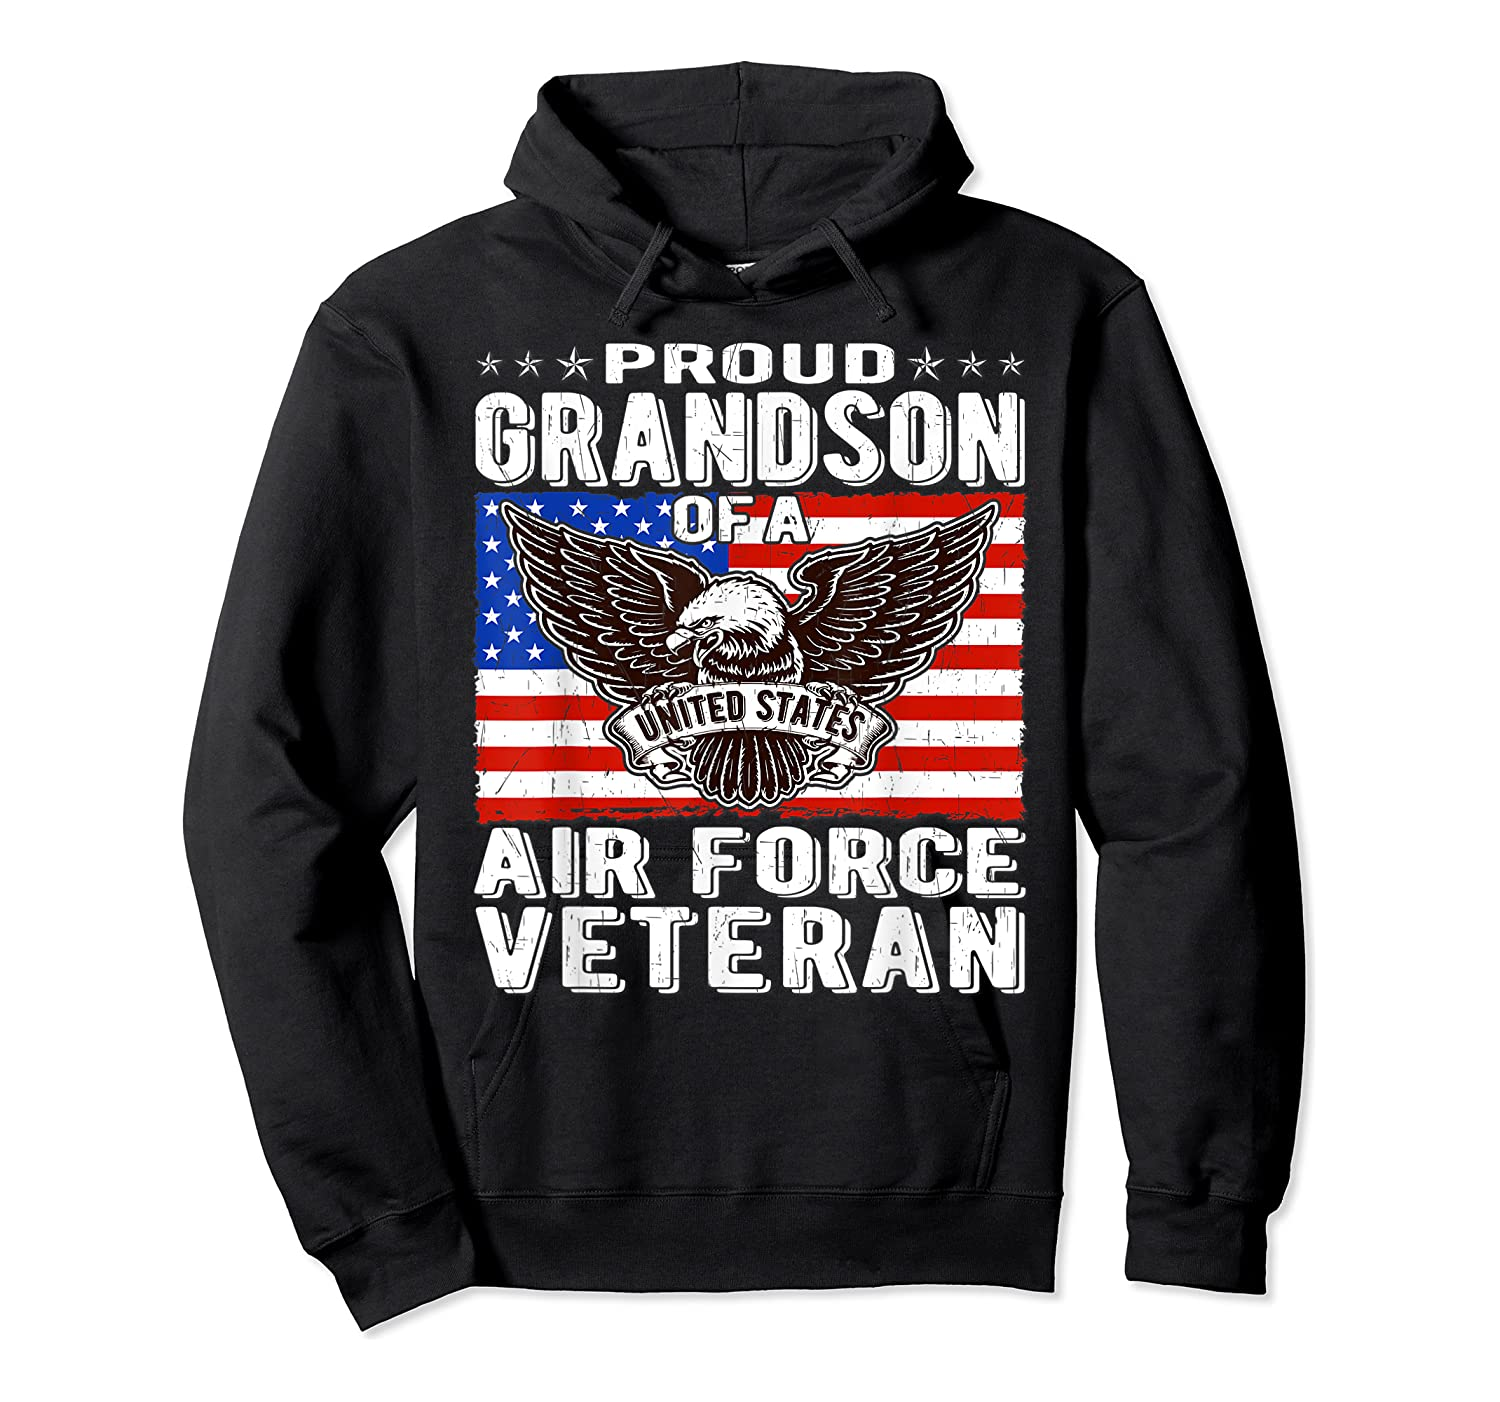 Proud Grandson Of Air Force Veteran Patriotic Military Gifts Shirts Unisex Pullover Hoodie